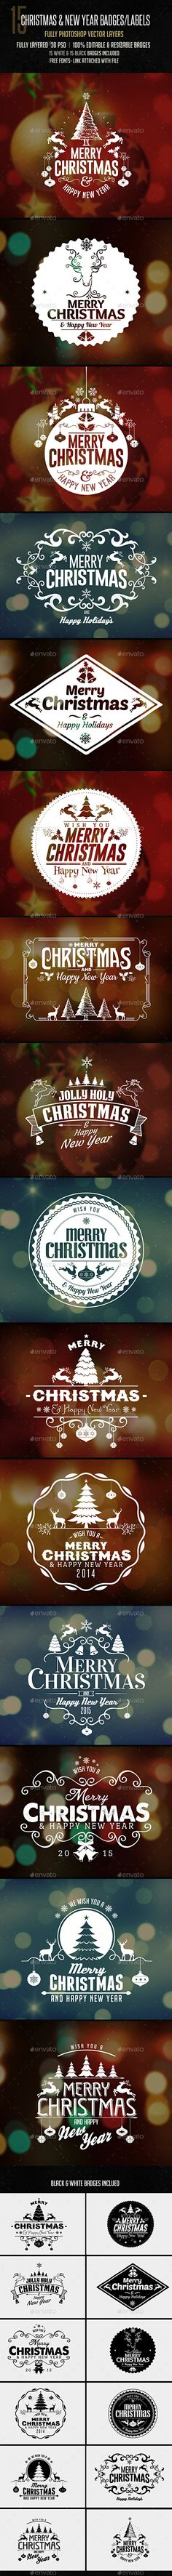 Car sticker photoshop tutorial - Christmas New Year Badges Sticker